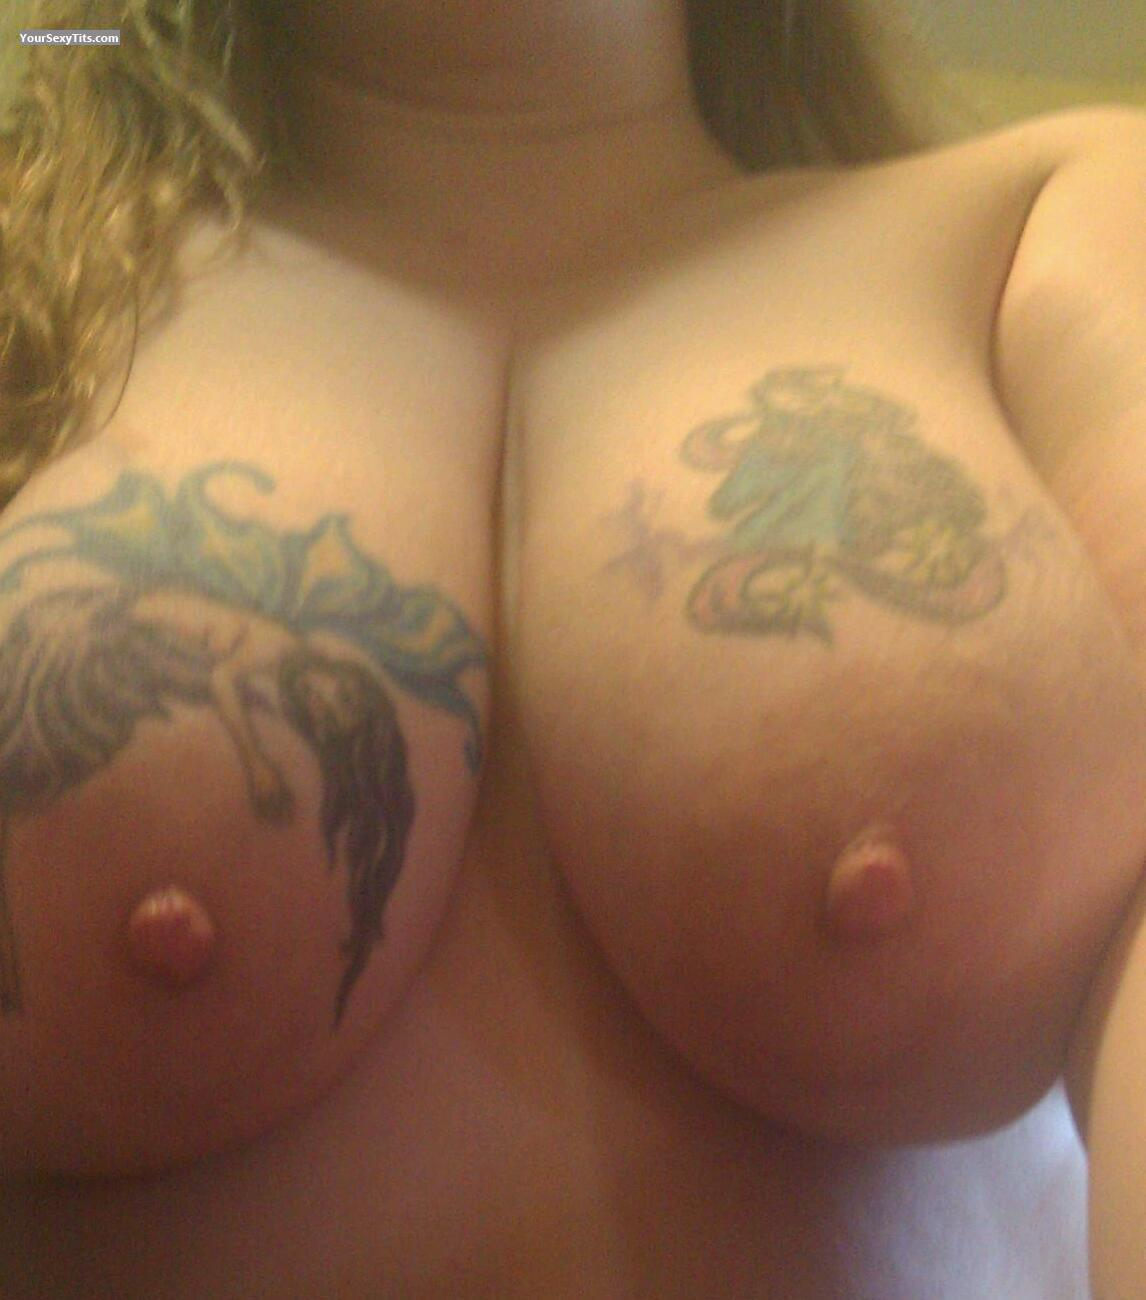 Tit Flash: My Very Big Tits (Selfie) - Titlover4u from United States